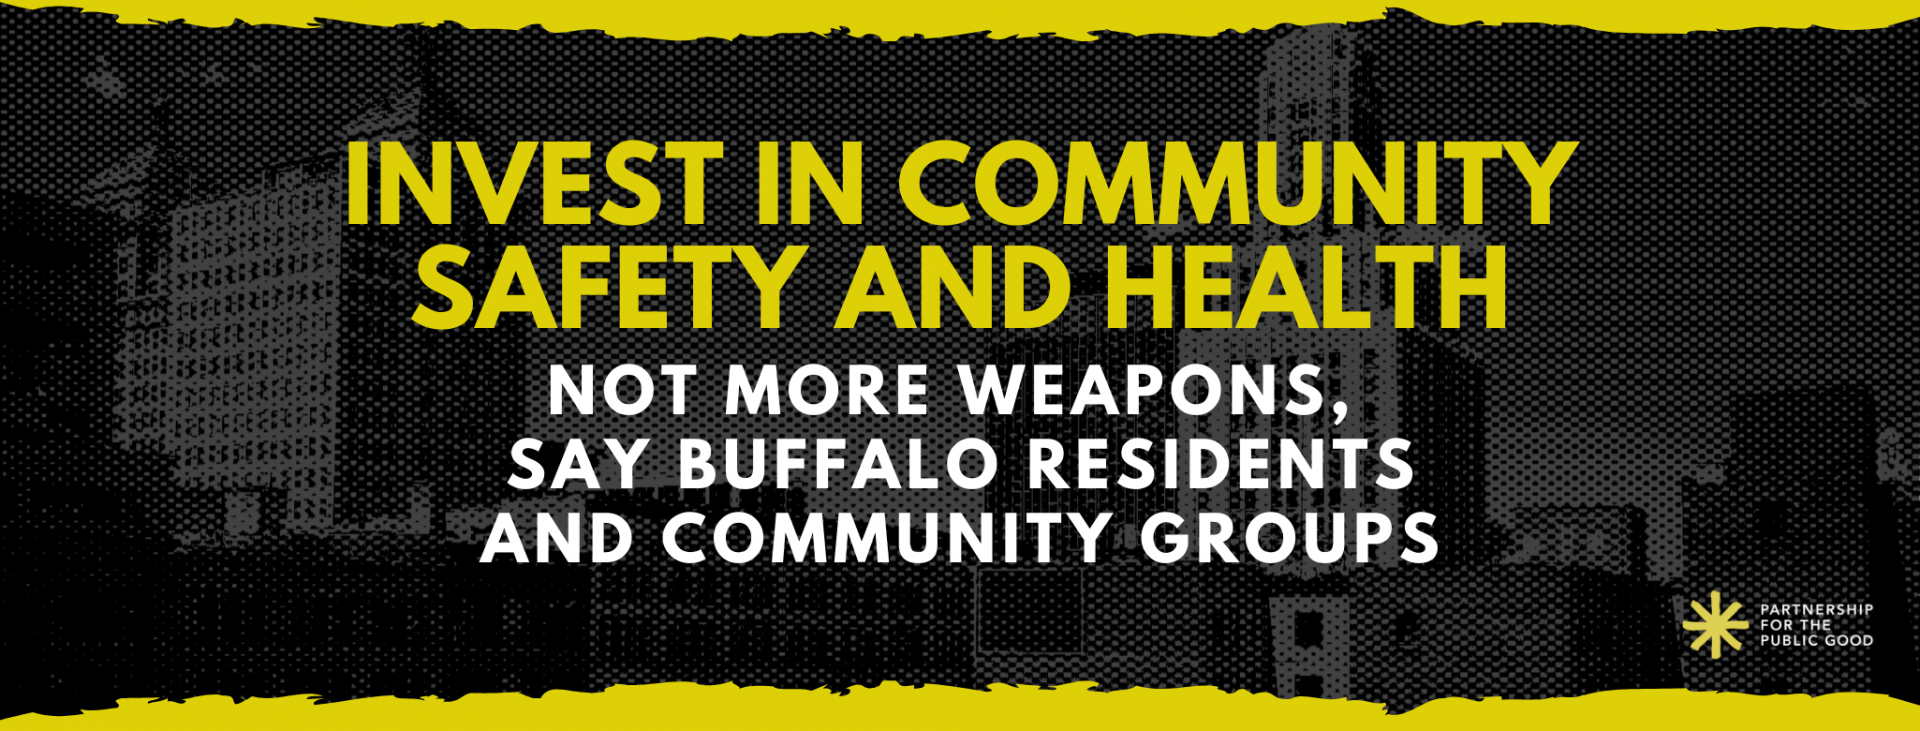 Invest in Community Safety and Health, Not More Weapons, Say Buffalo Residents and Community Groups